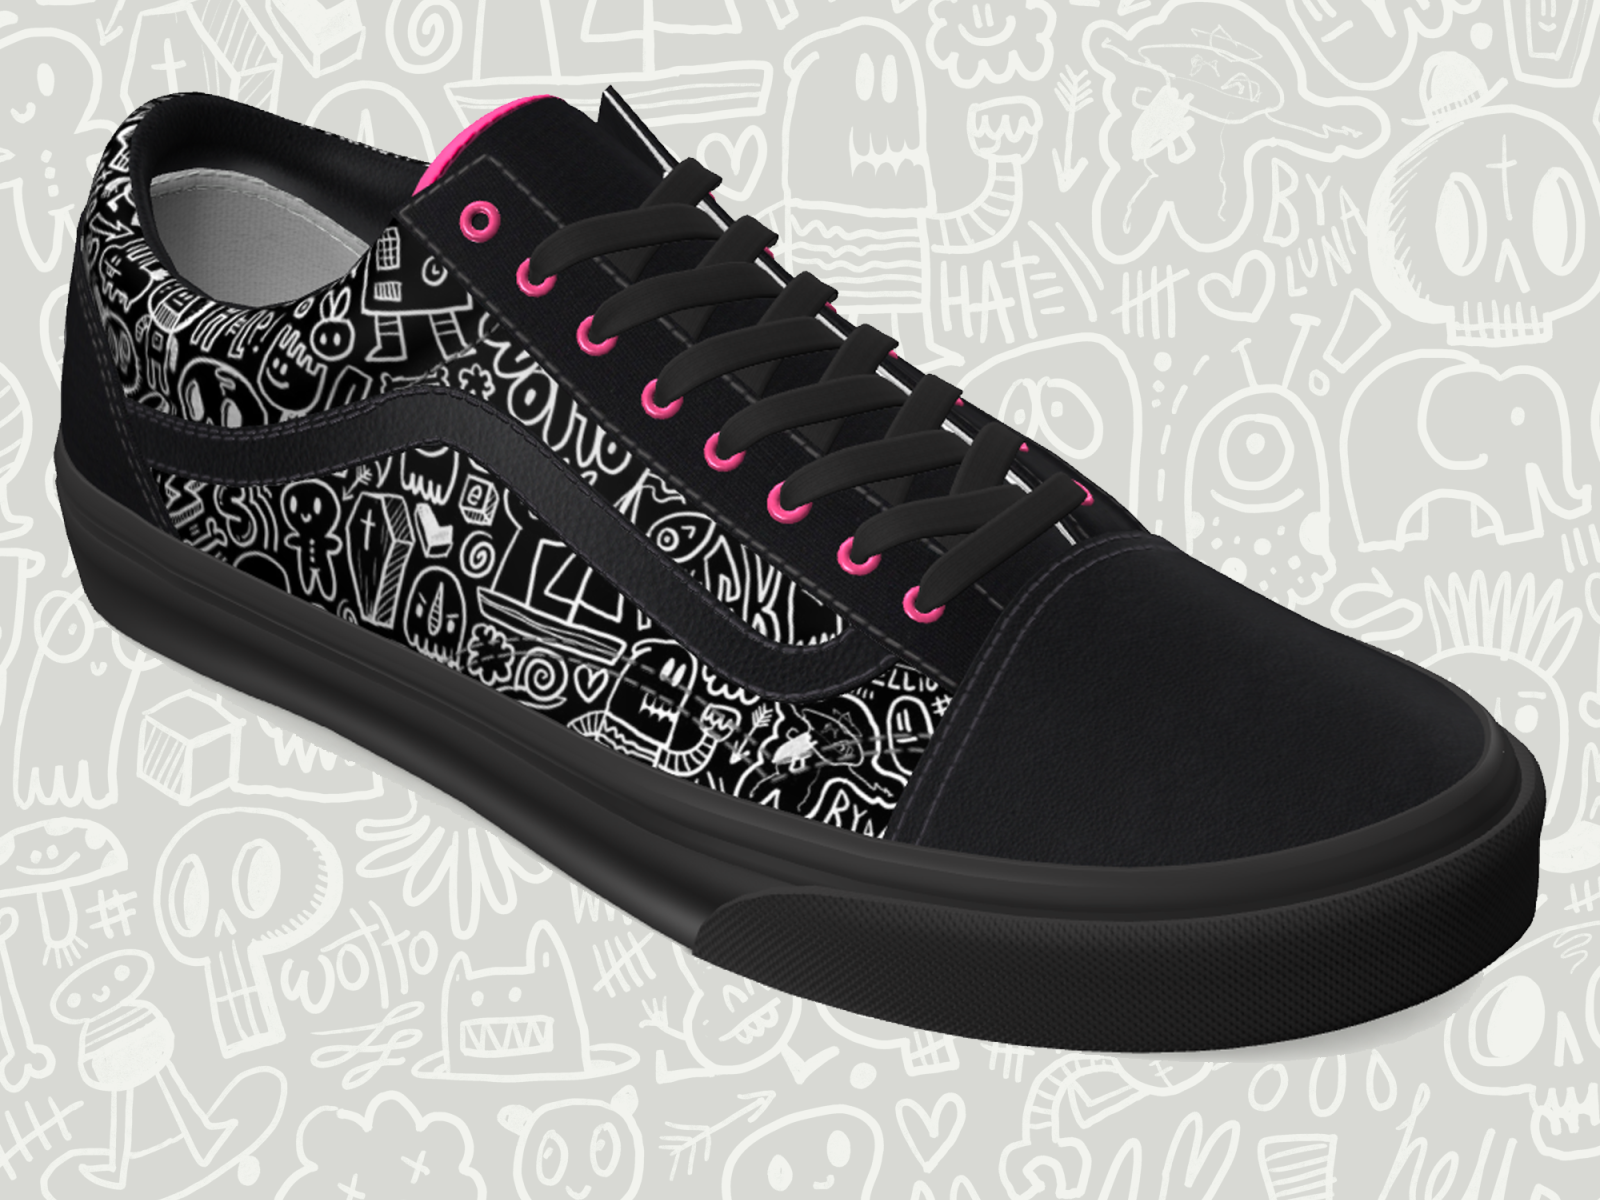 Vans custom shoes. by wotto76 on Dribbble